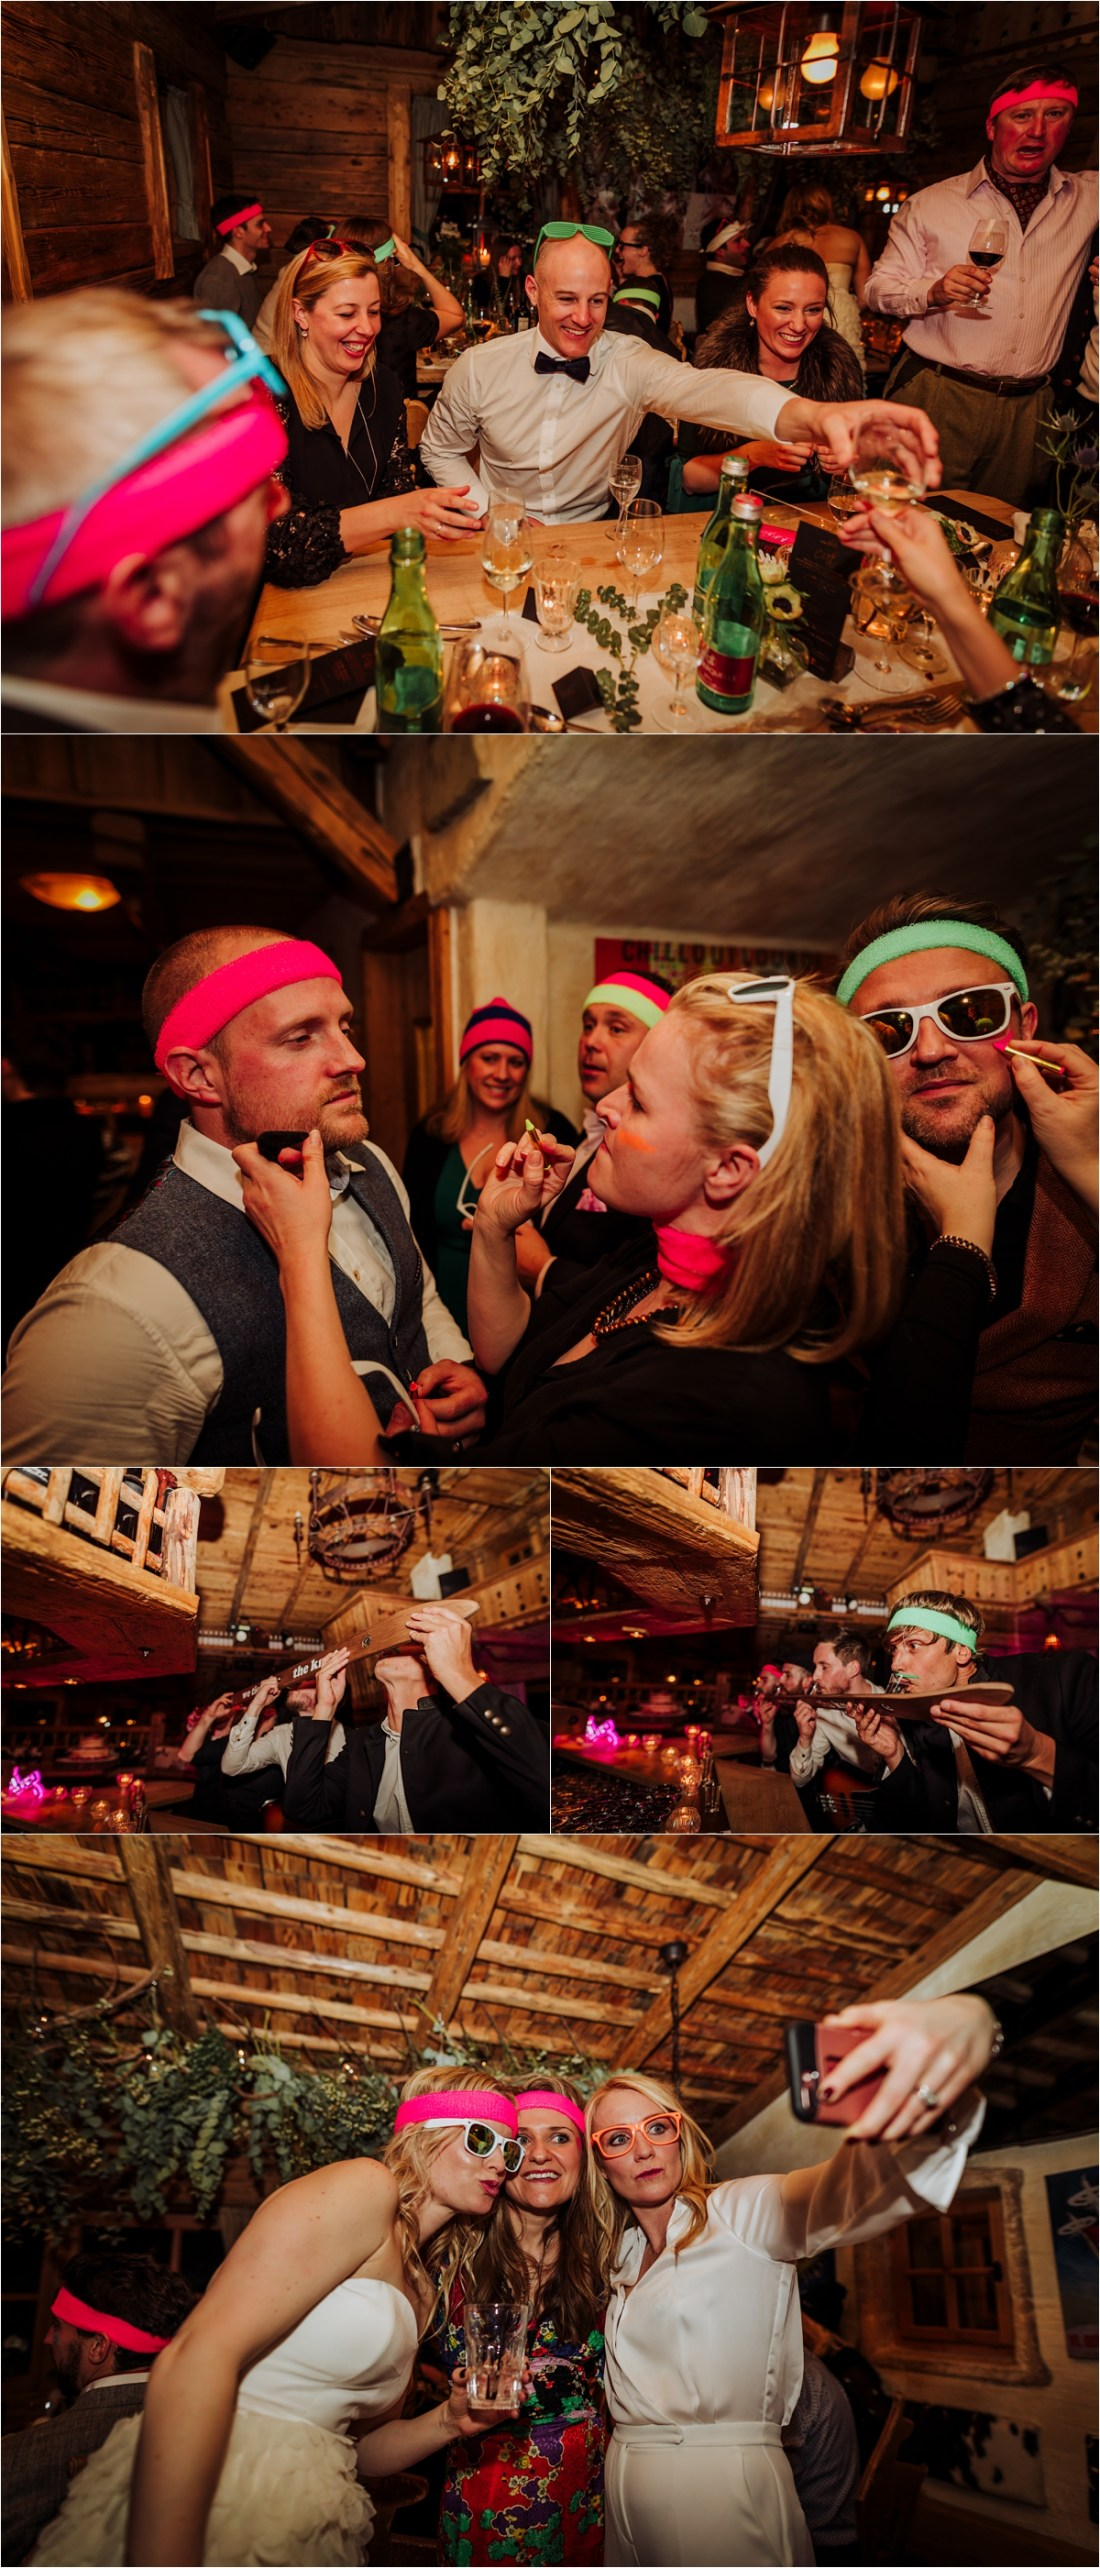 Neon headbands and face paints for crazy apres-ski wedding reception in Austria by Wild Connections Photography